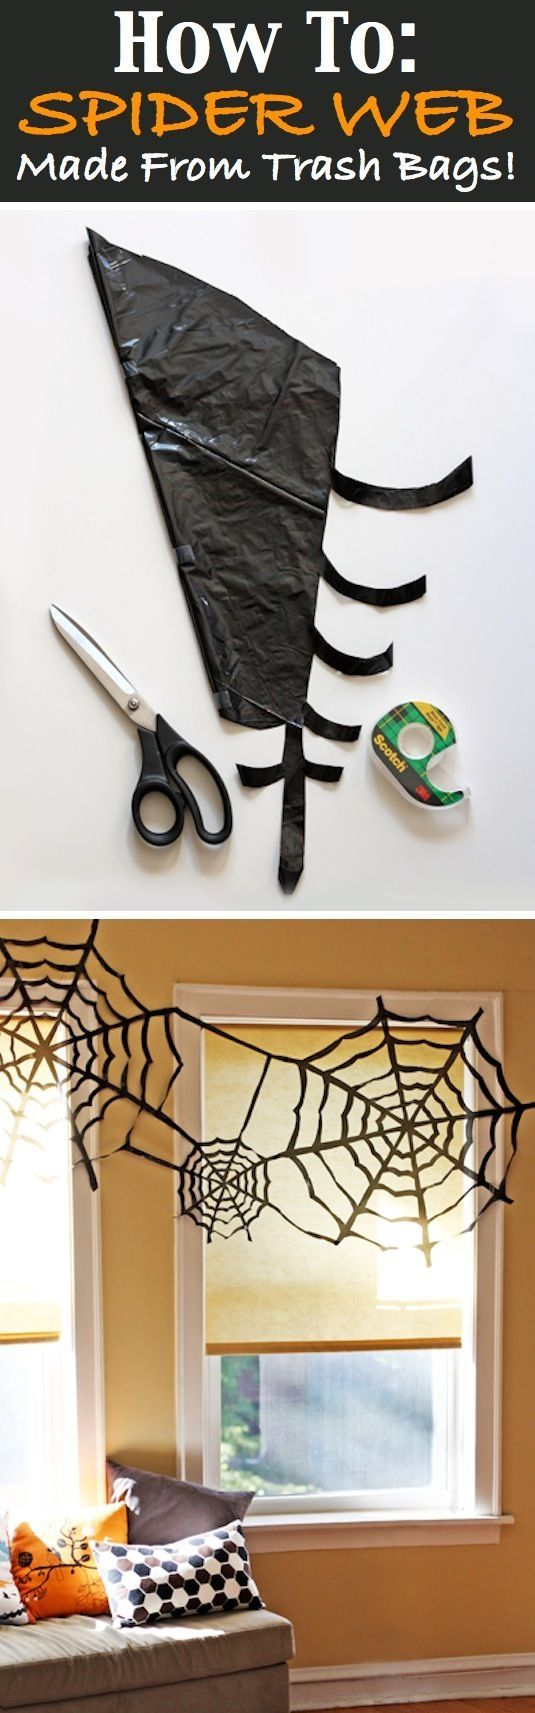 16+ Easy But Awesome Homemade Halloween Decorations (With Photo - cool homemade halloween decorations